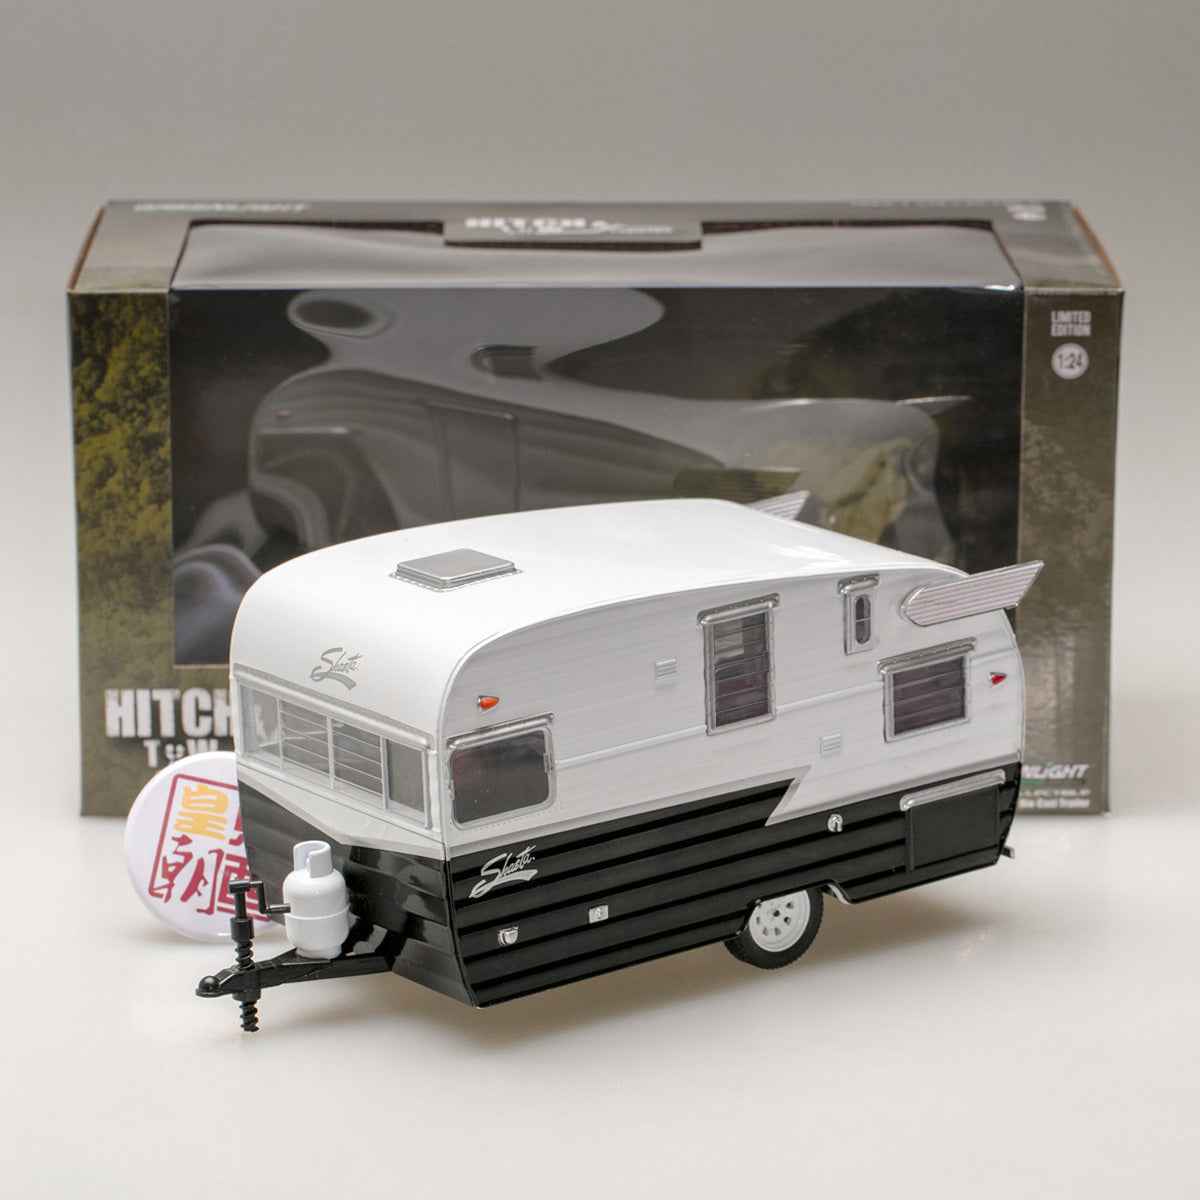 GreenLight 1:24 Hitch & Tow Trailers Series 4 - Shasta 15 feet Airflyte - White and Black 18440-B